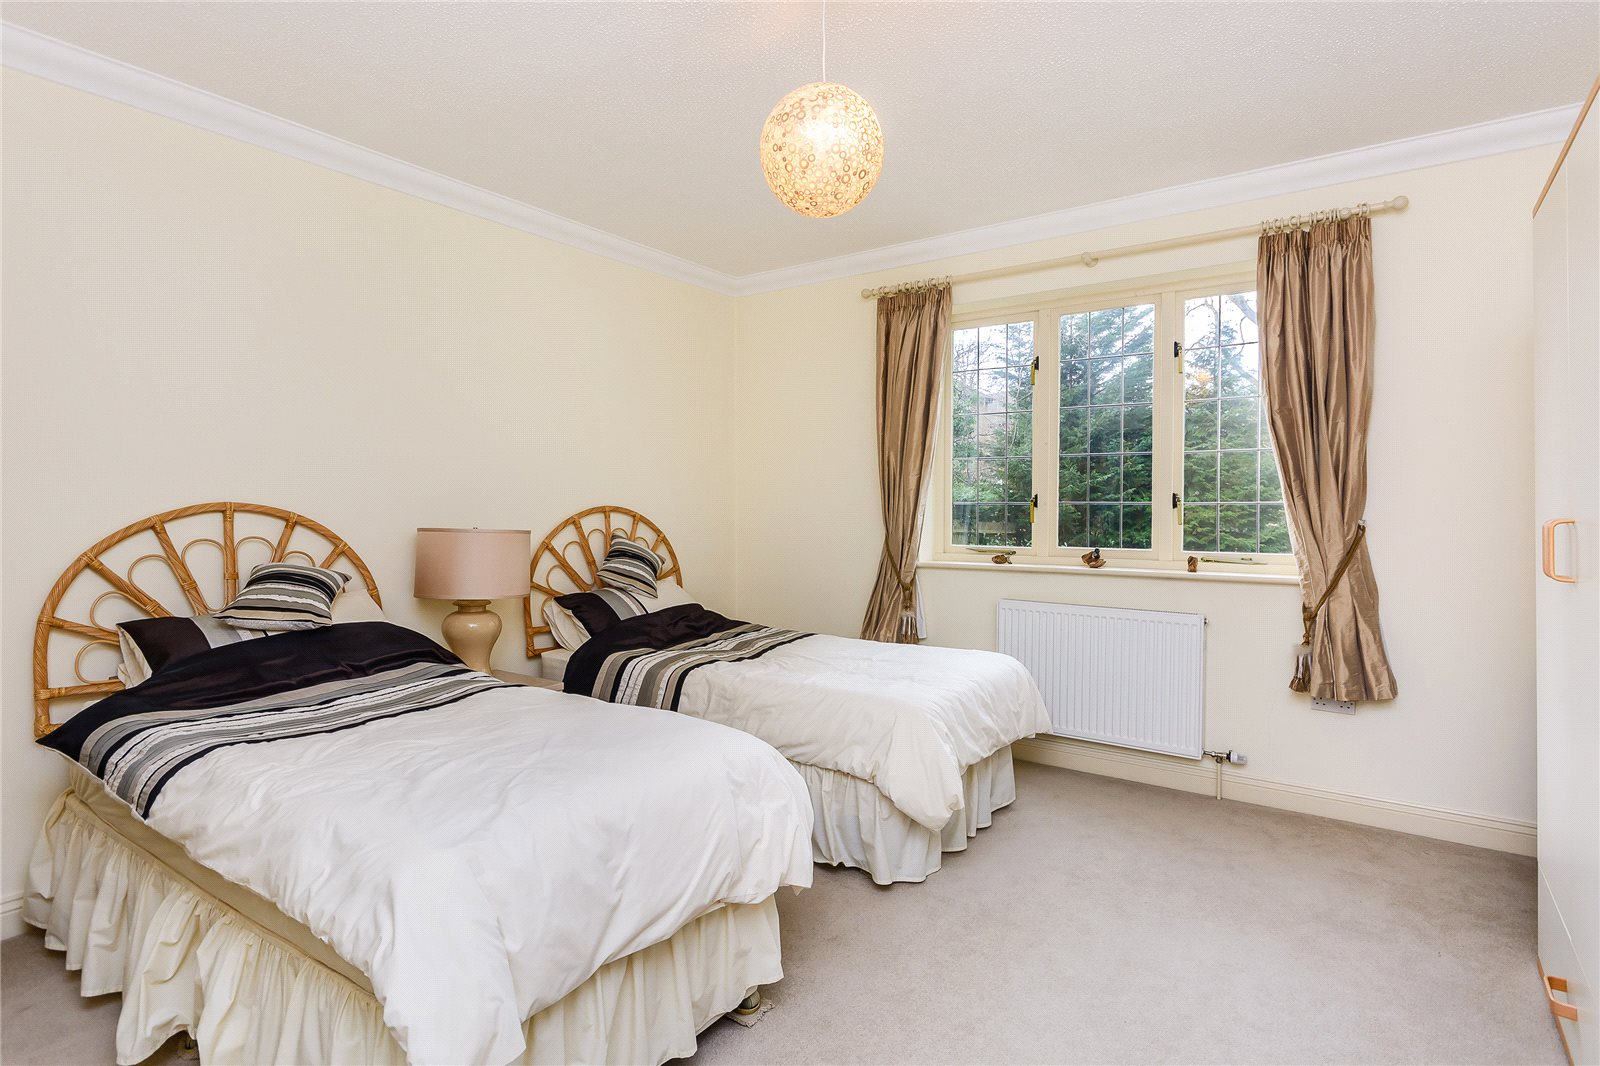 Additional photo for property listing at Mill Lane, Gerrards Cross, Buckinghamshire, SL9 Gerrards Cross, Αγγλια